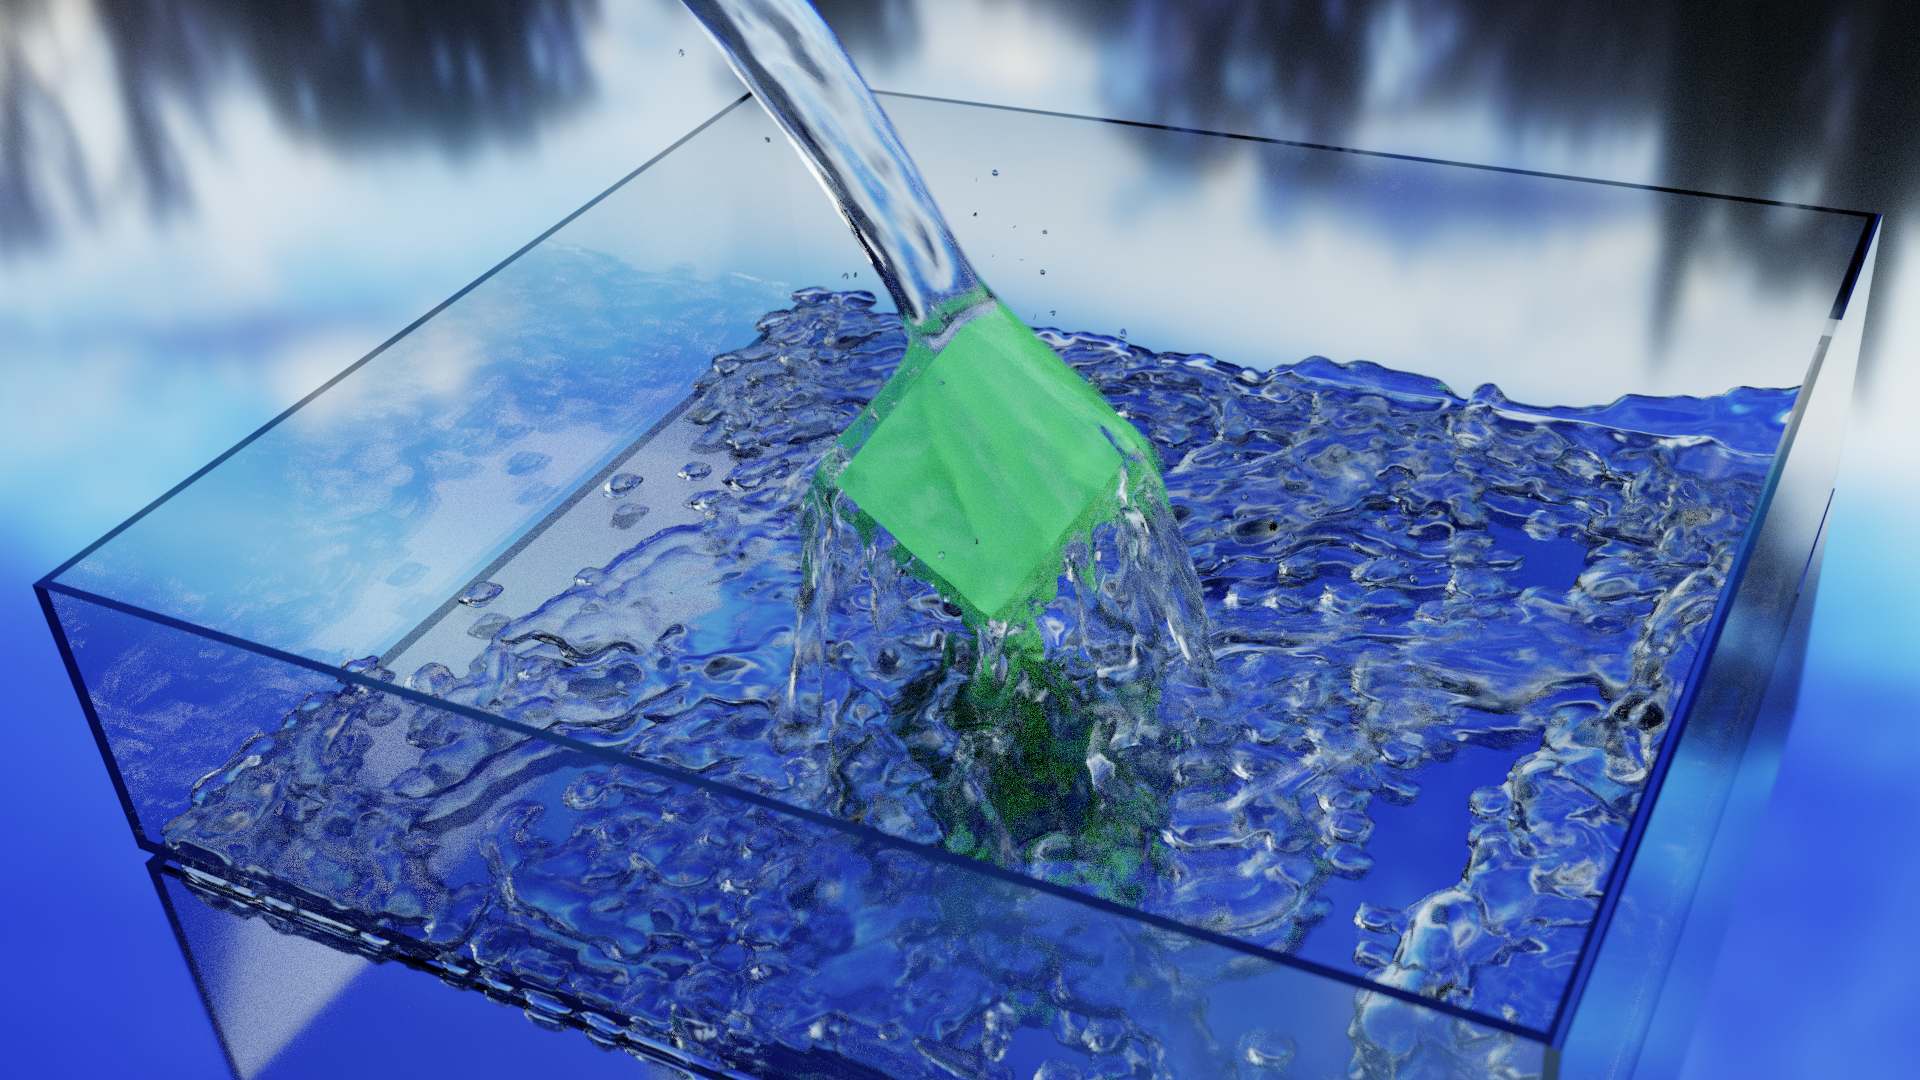 Water Simulation Research Paper Help Uptermpaperdfuaberwingpress